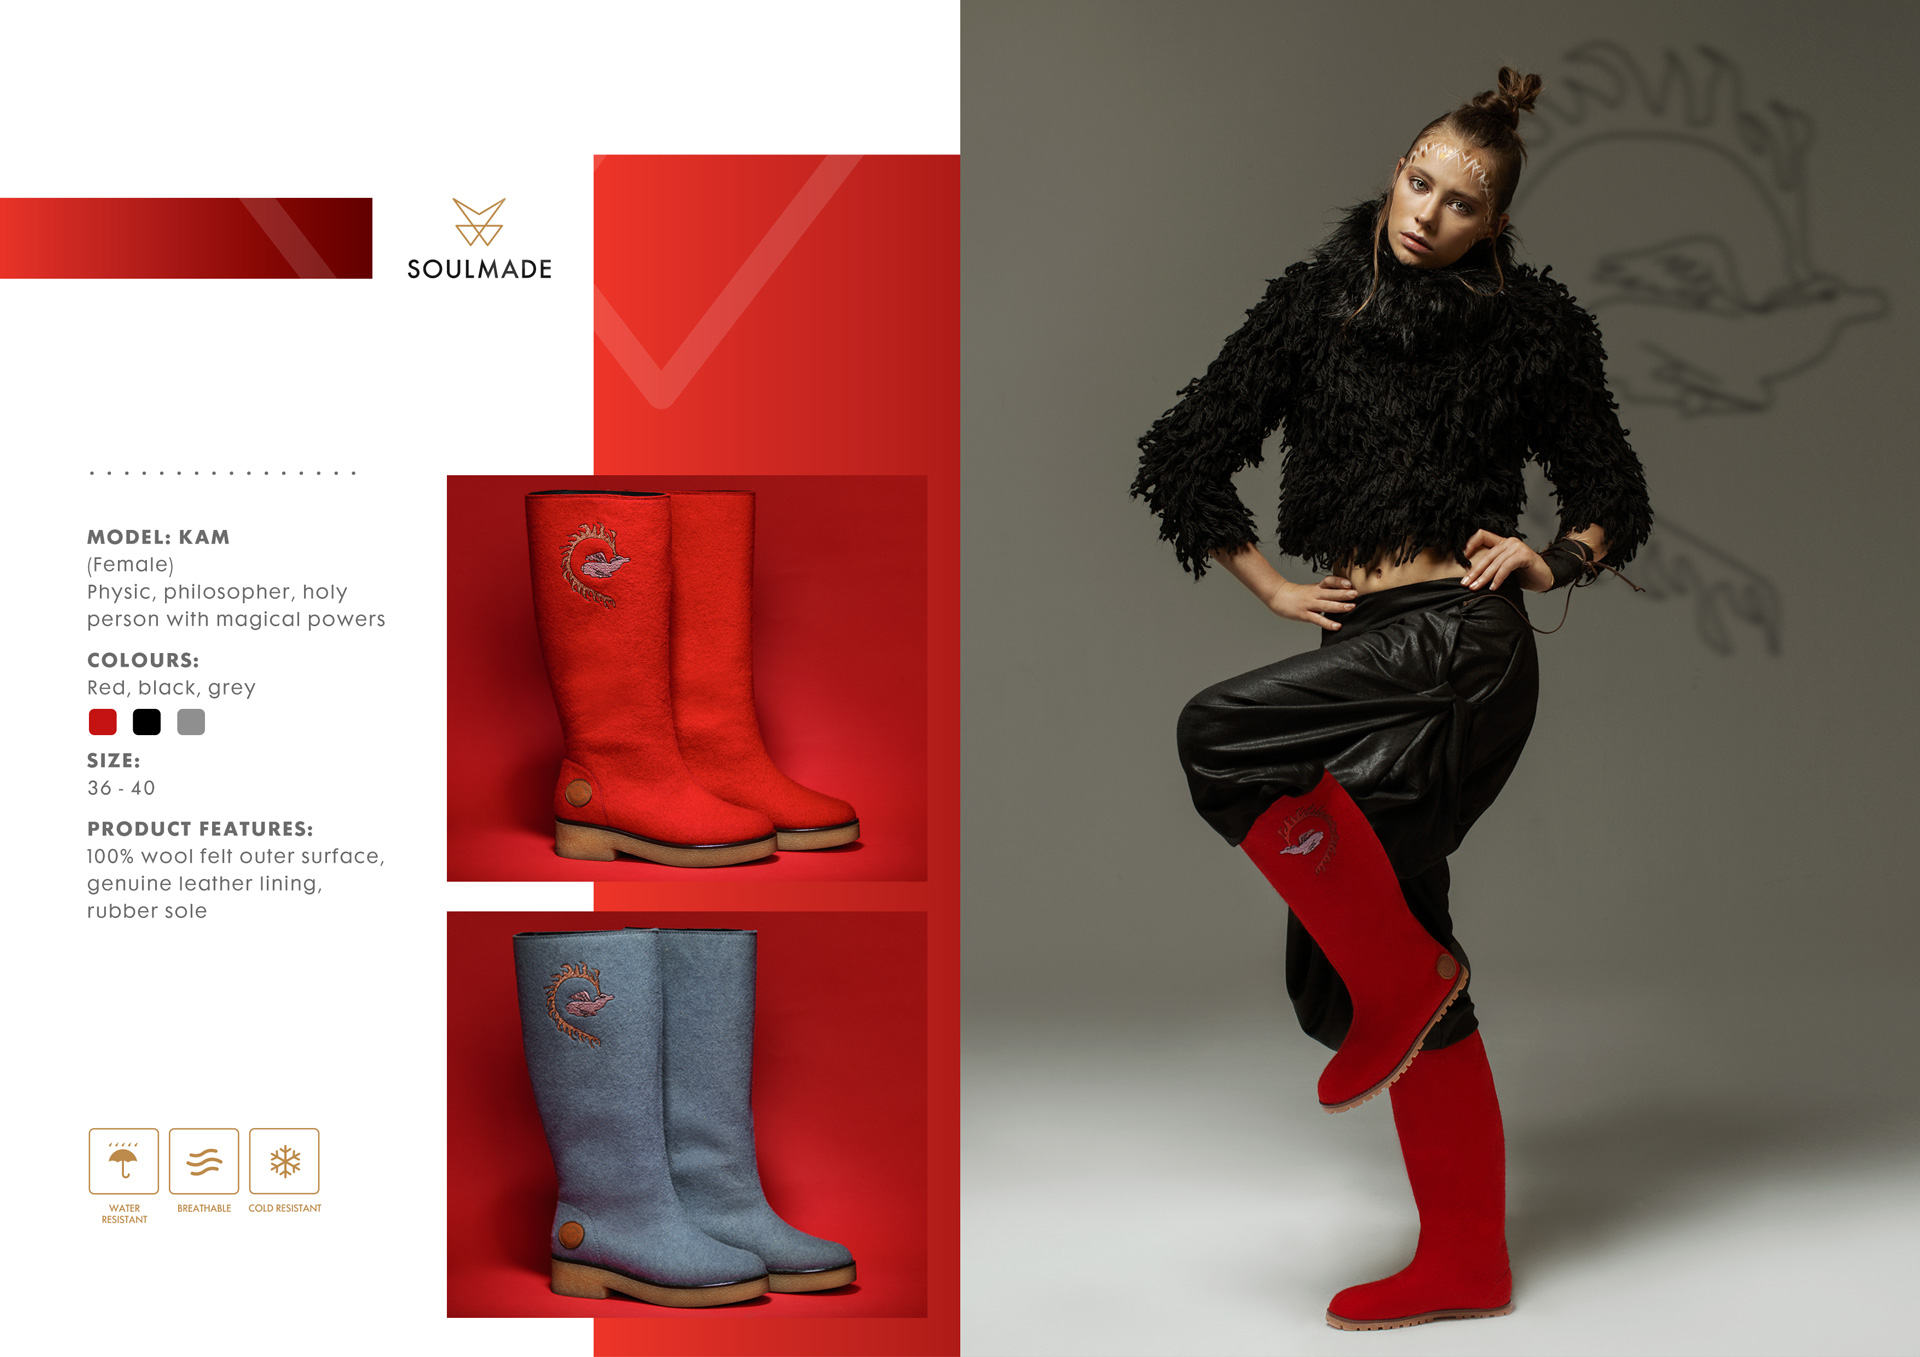 Soul Made Online Shop - KAM - Woman Grey Wool Felt Top Boot - KAM Product Details - 2